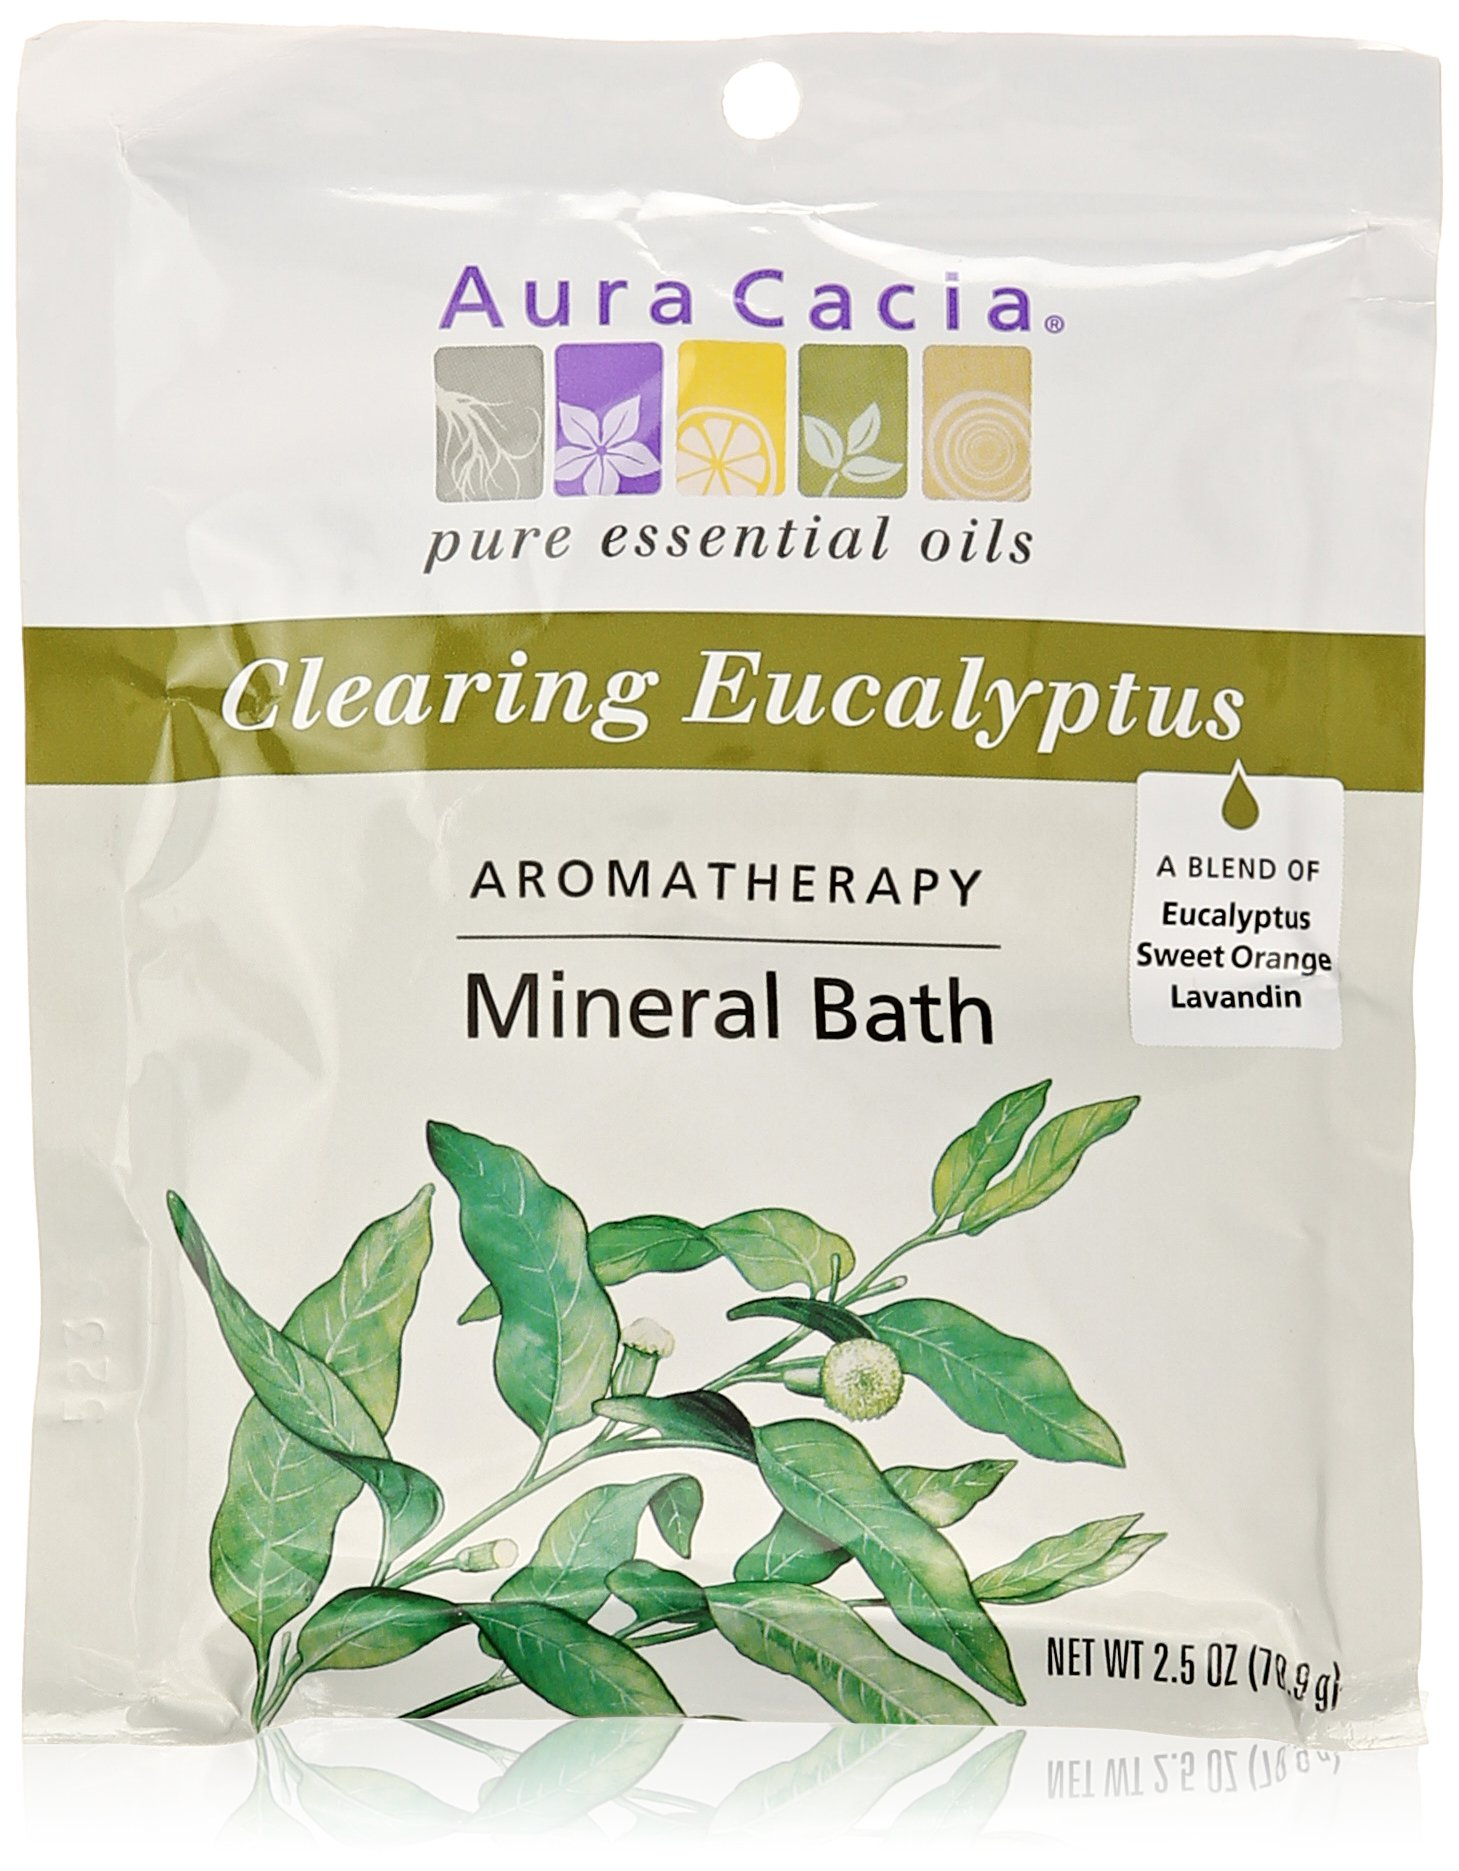 Aura Cacia Aromatherapy Mineral Bath, Clearing Eucalyptus, 2.5 ounce packet (Pack of 3)